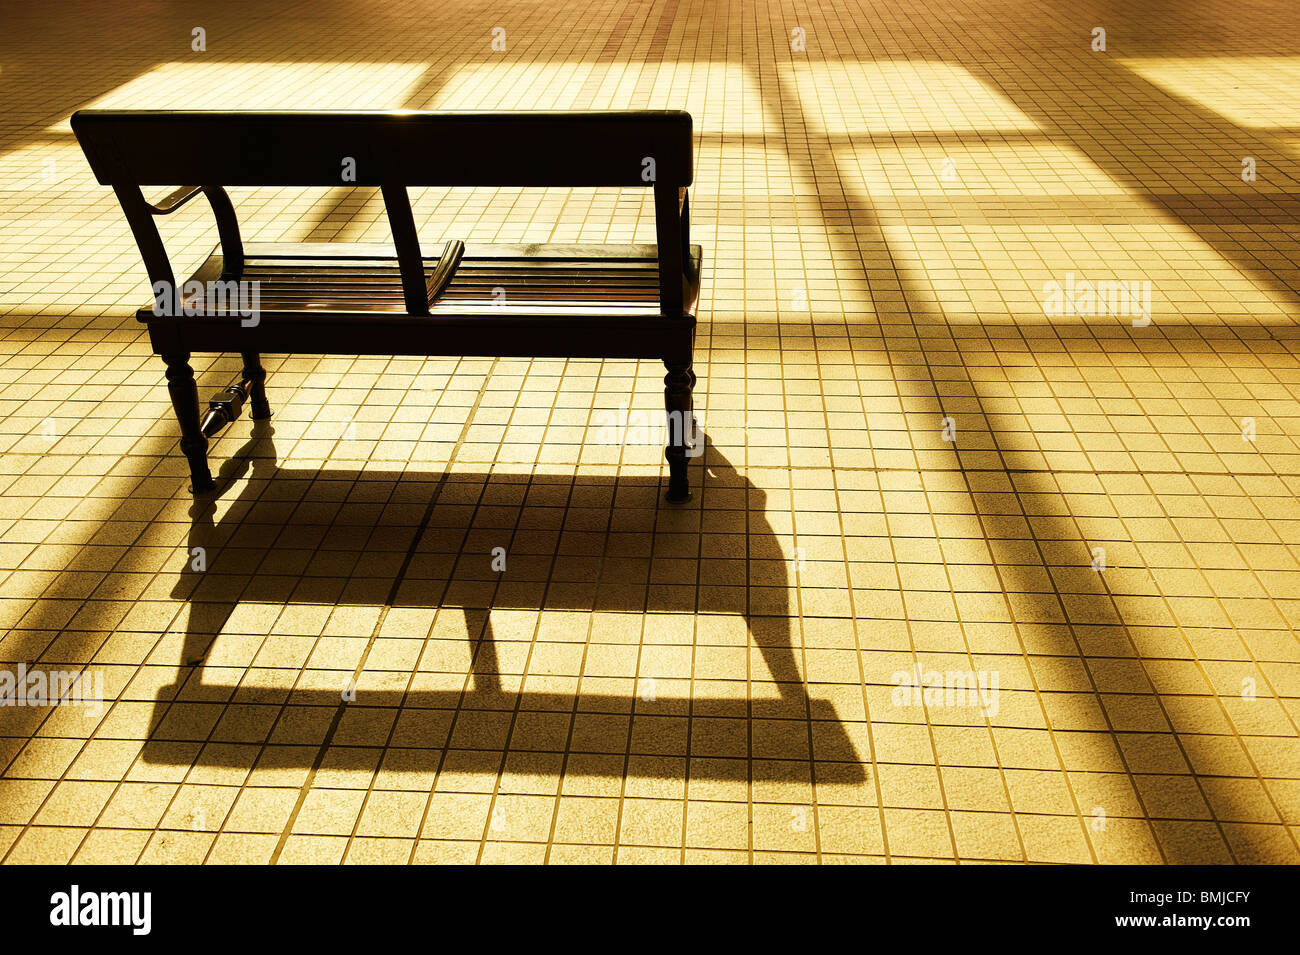 A lonely bench in the golden sitting sun with shadow stretching long and wide. Stock Photo